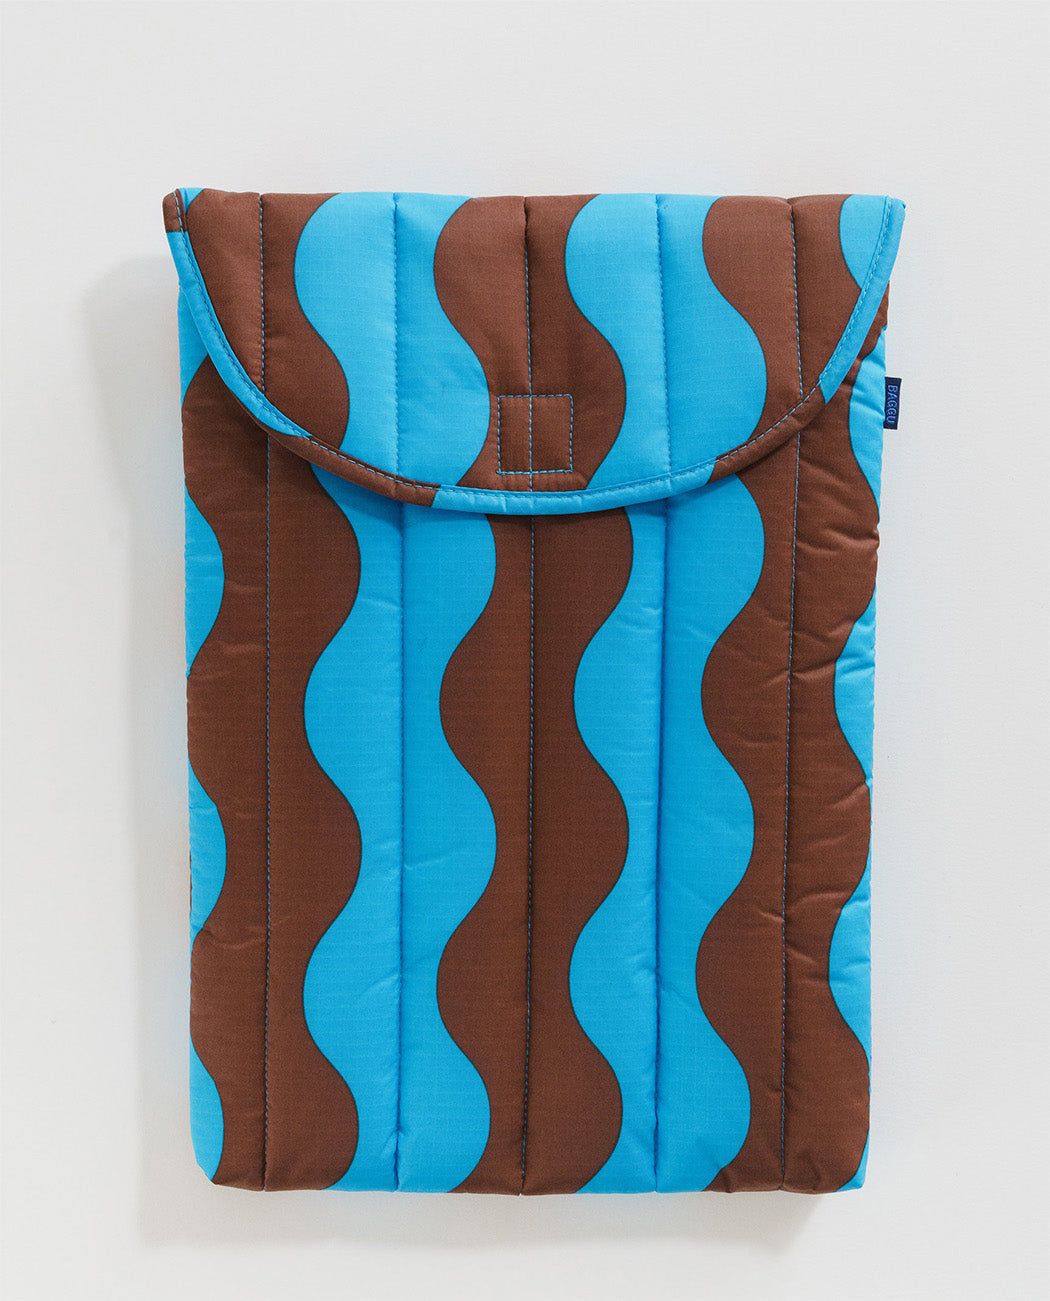 Baggu Puffy Laptop Sleeve 16 inch Teal Brown Wavy Stripe Utrecht